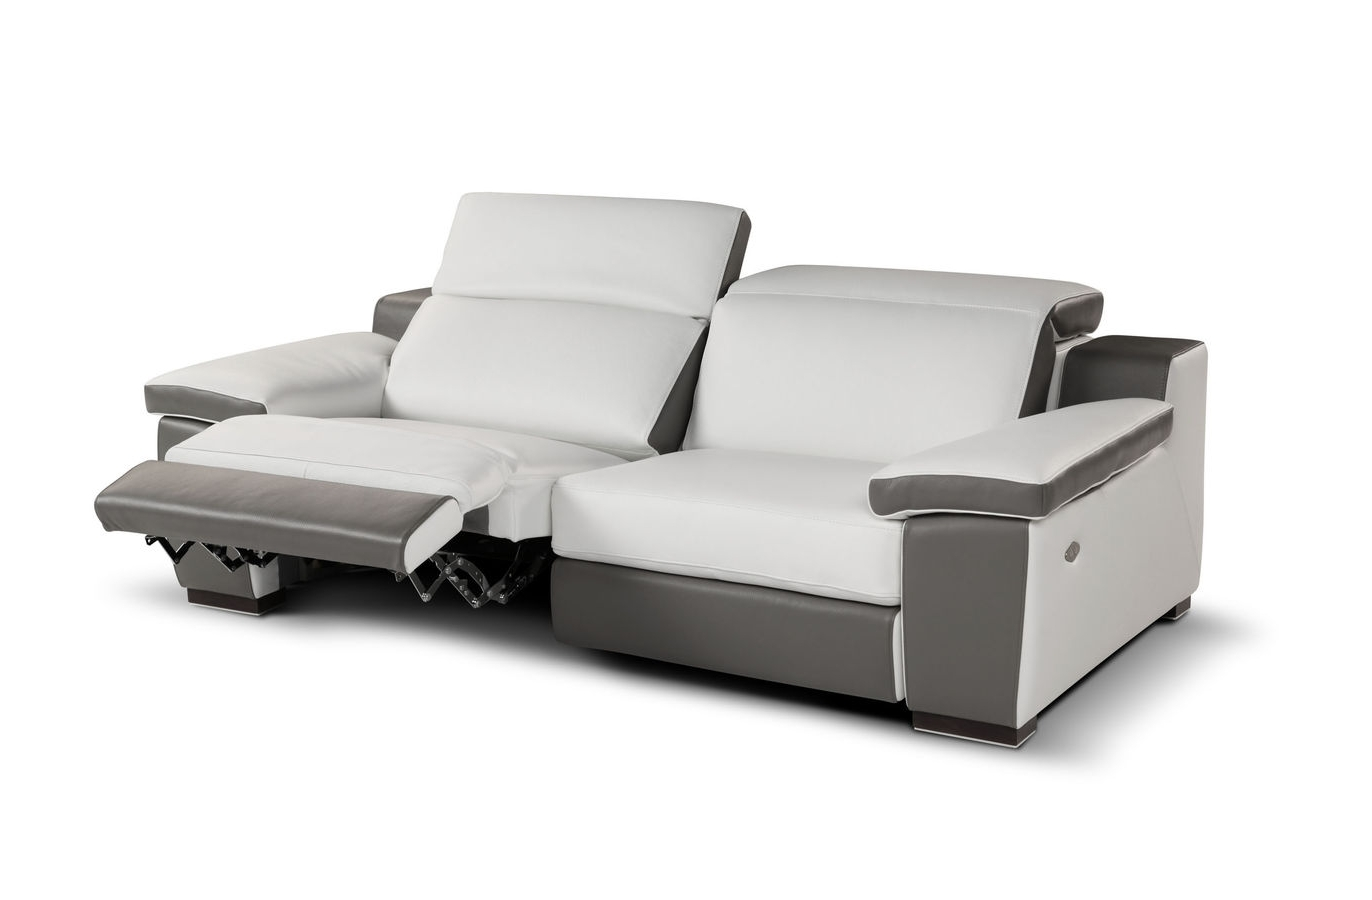 2018 Sofa: Remarkable Reclining Leather Sofa Leather Recliners On Sale Throughout Modern Reclining Leather Sofas (View 1 of 20)